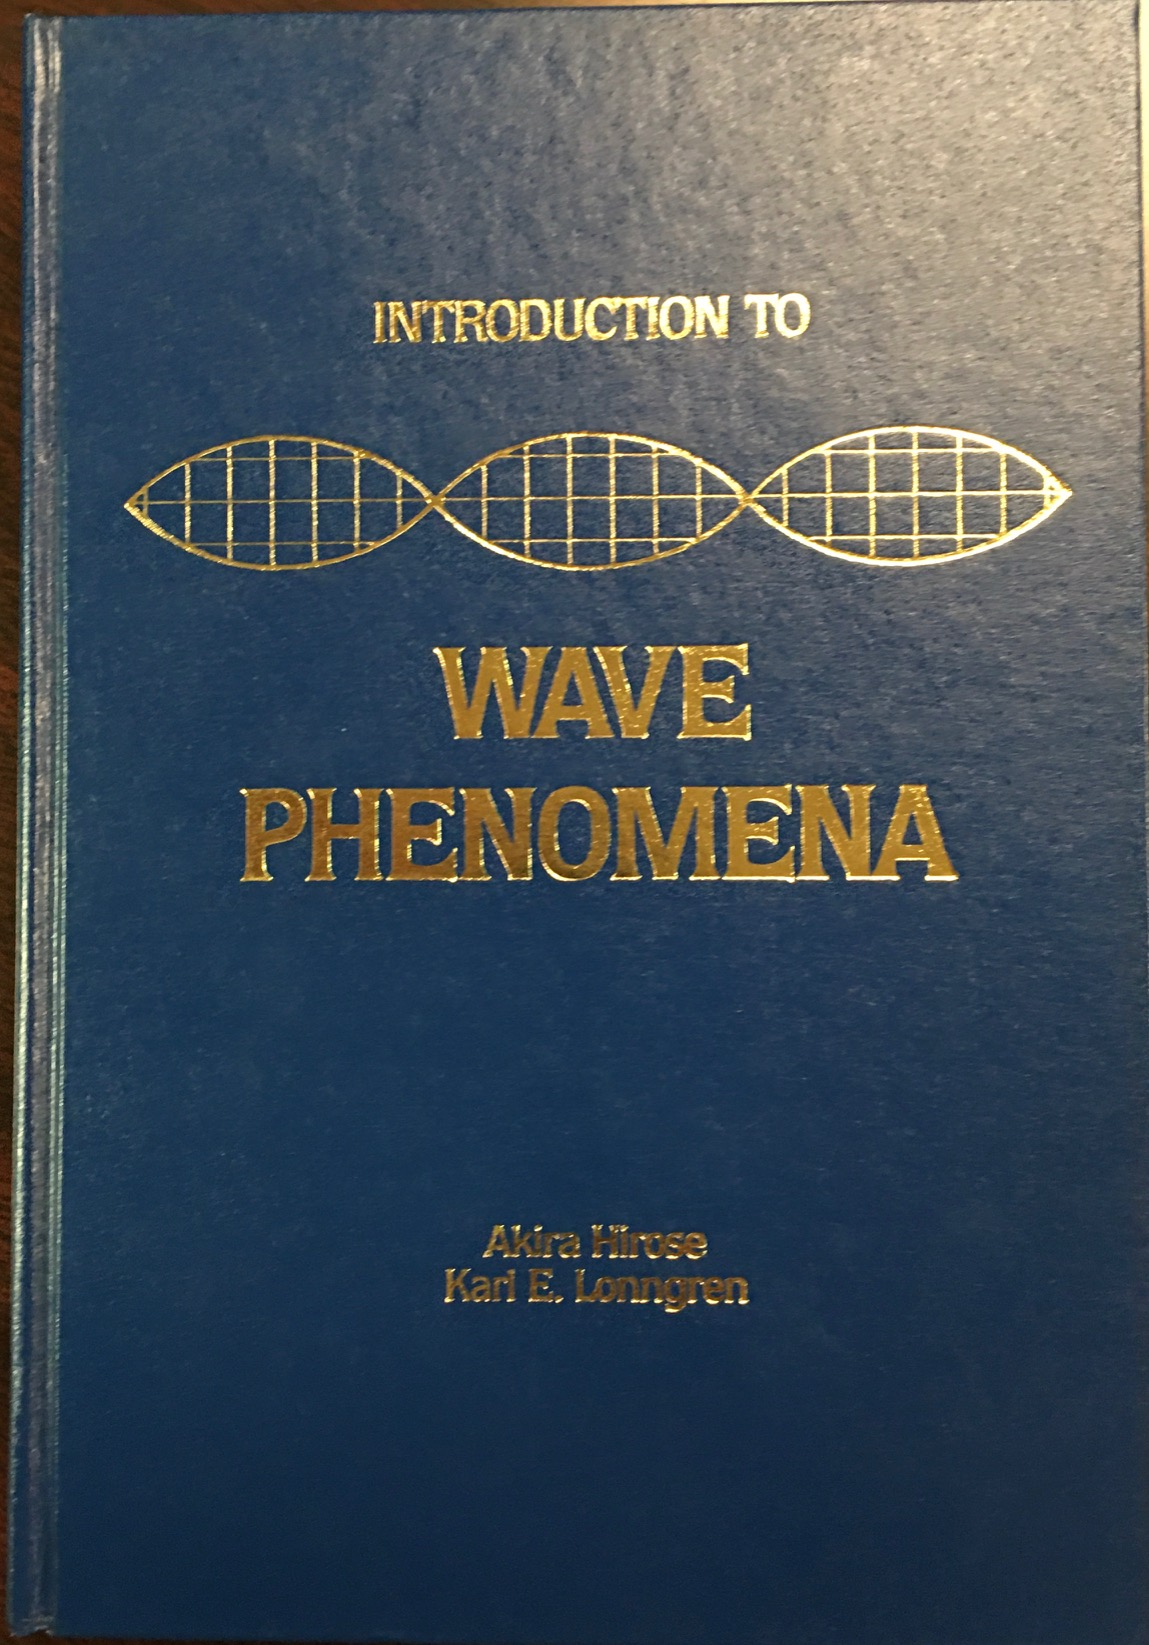 Image for Introduction to Wave Phenomena